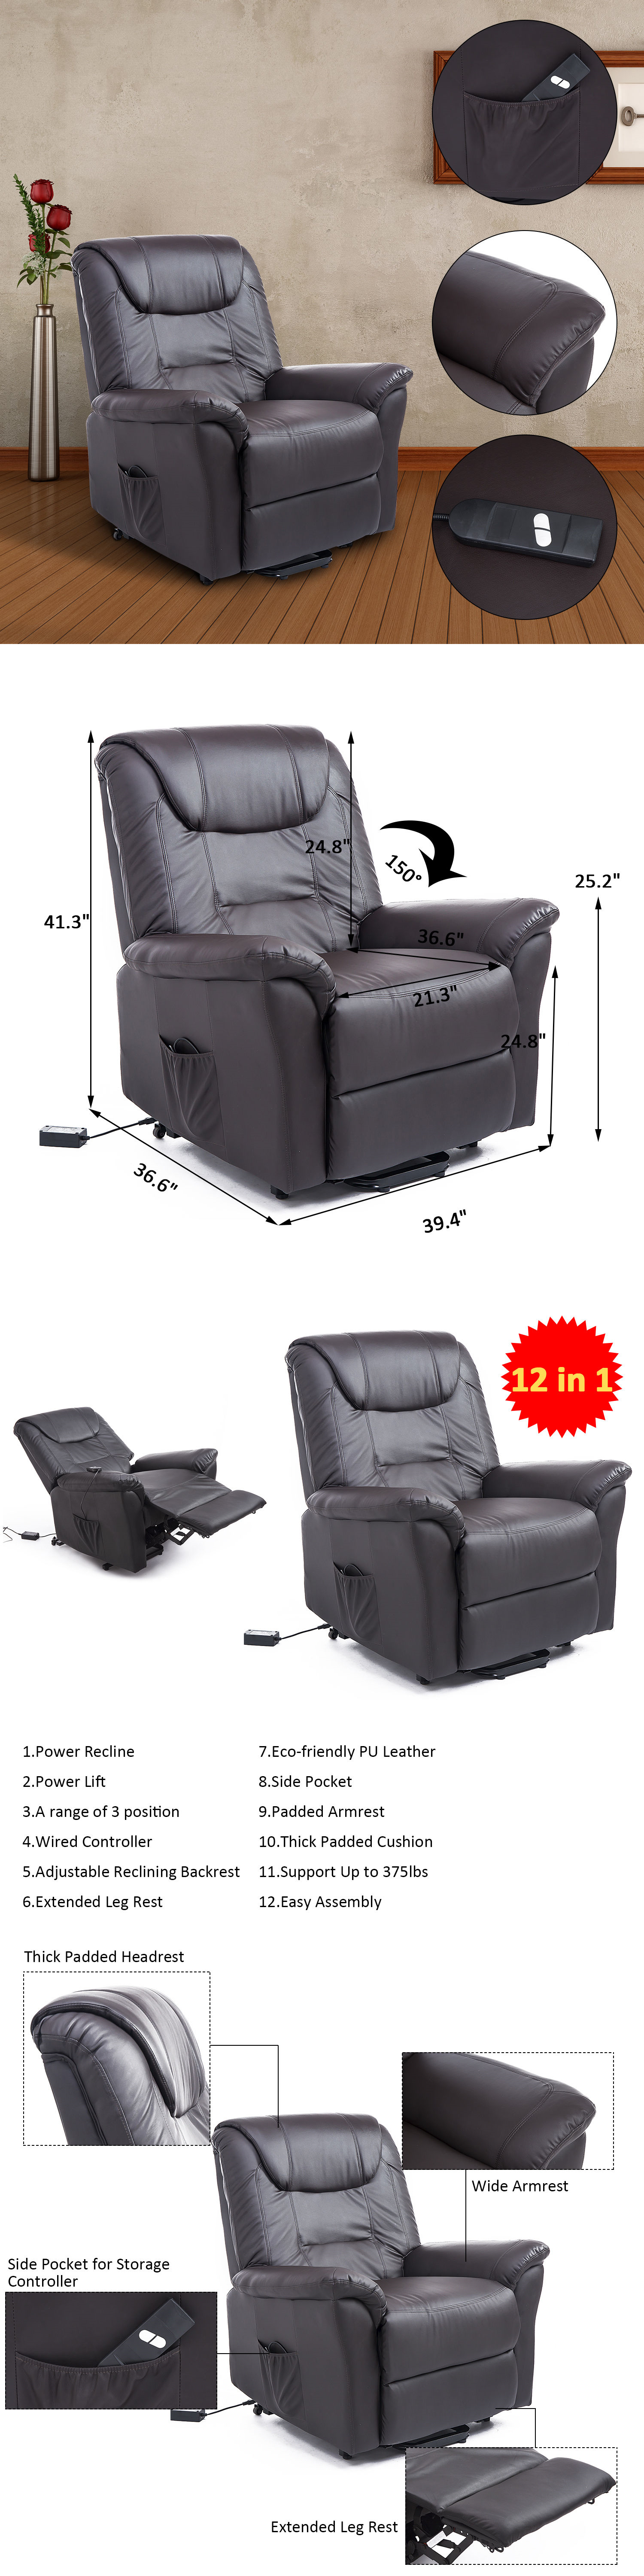 Stairlifts and Elevators: Electric Power Lift Chair Assist Sofa ...